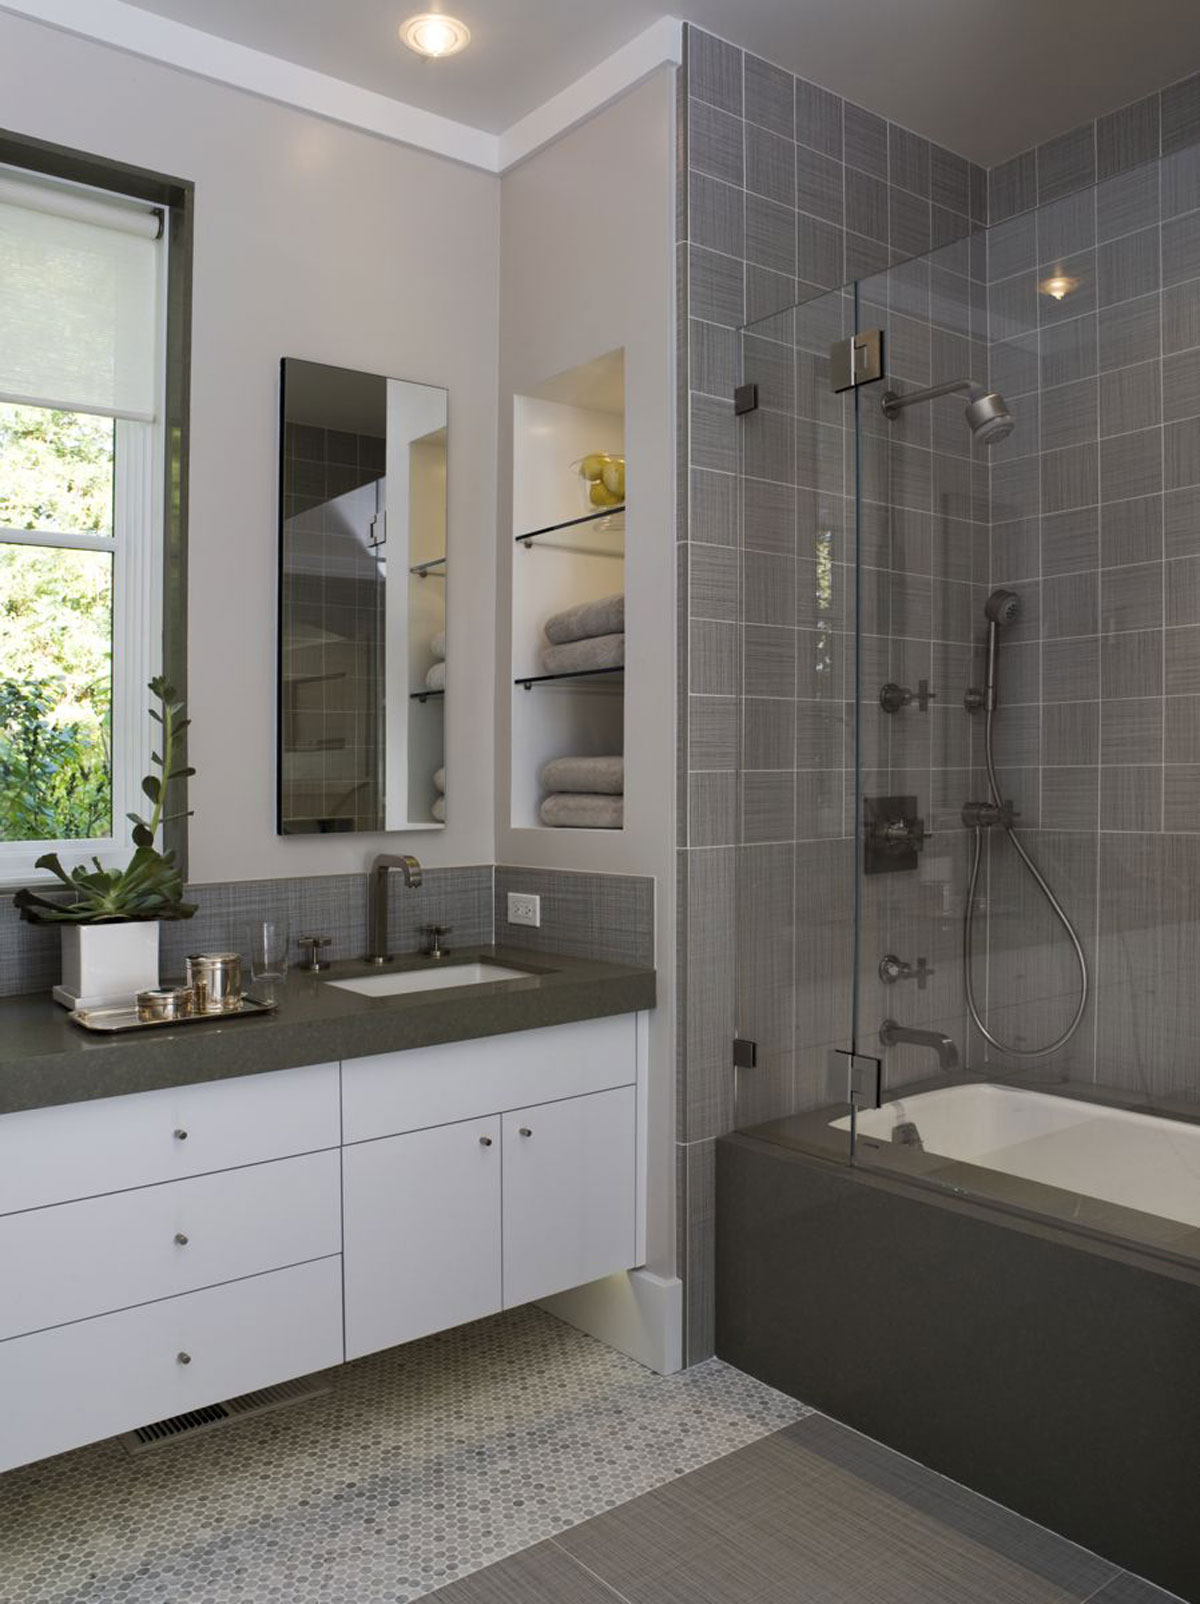 grey bathroom space ideas - Iroonie.com